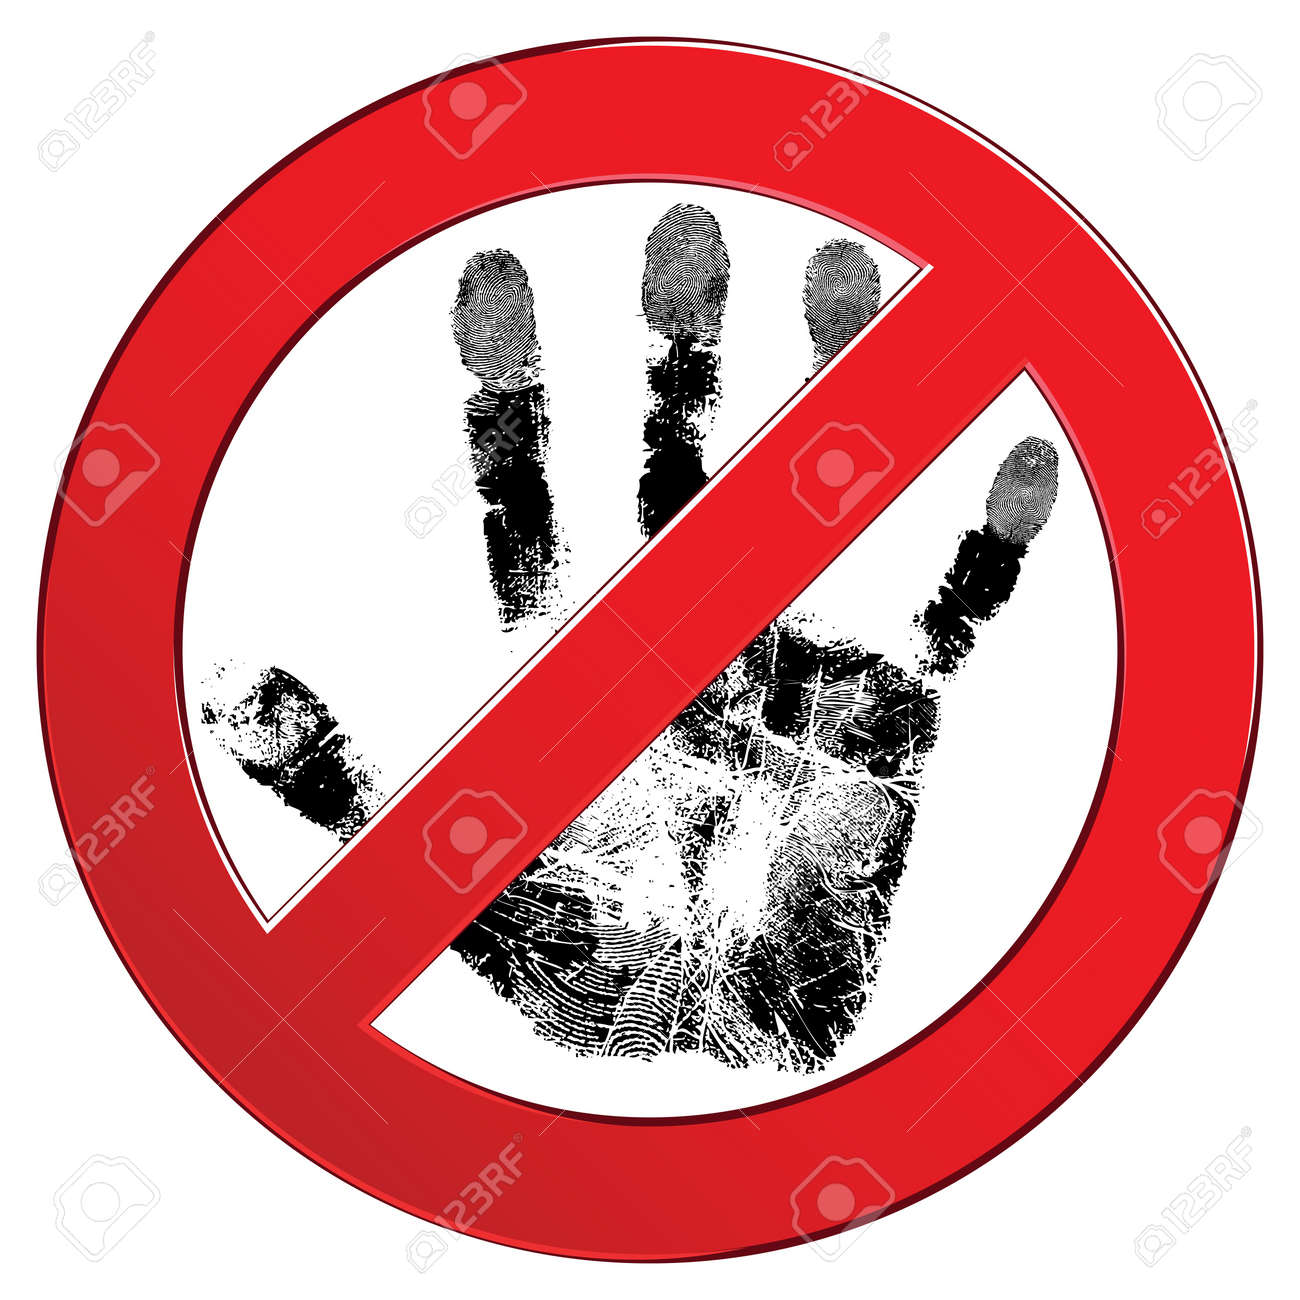 Sign forbidden circle with people hand texture. Don't touch. Prohibited red symbol isolated  illustration. Element for design. Stock Vector - 16439699